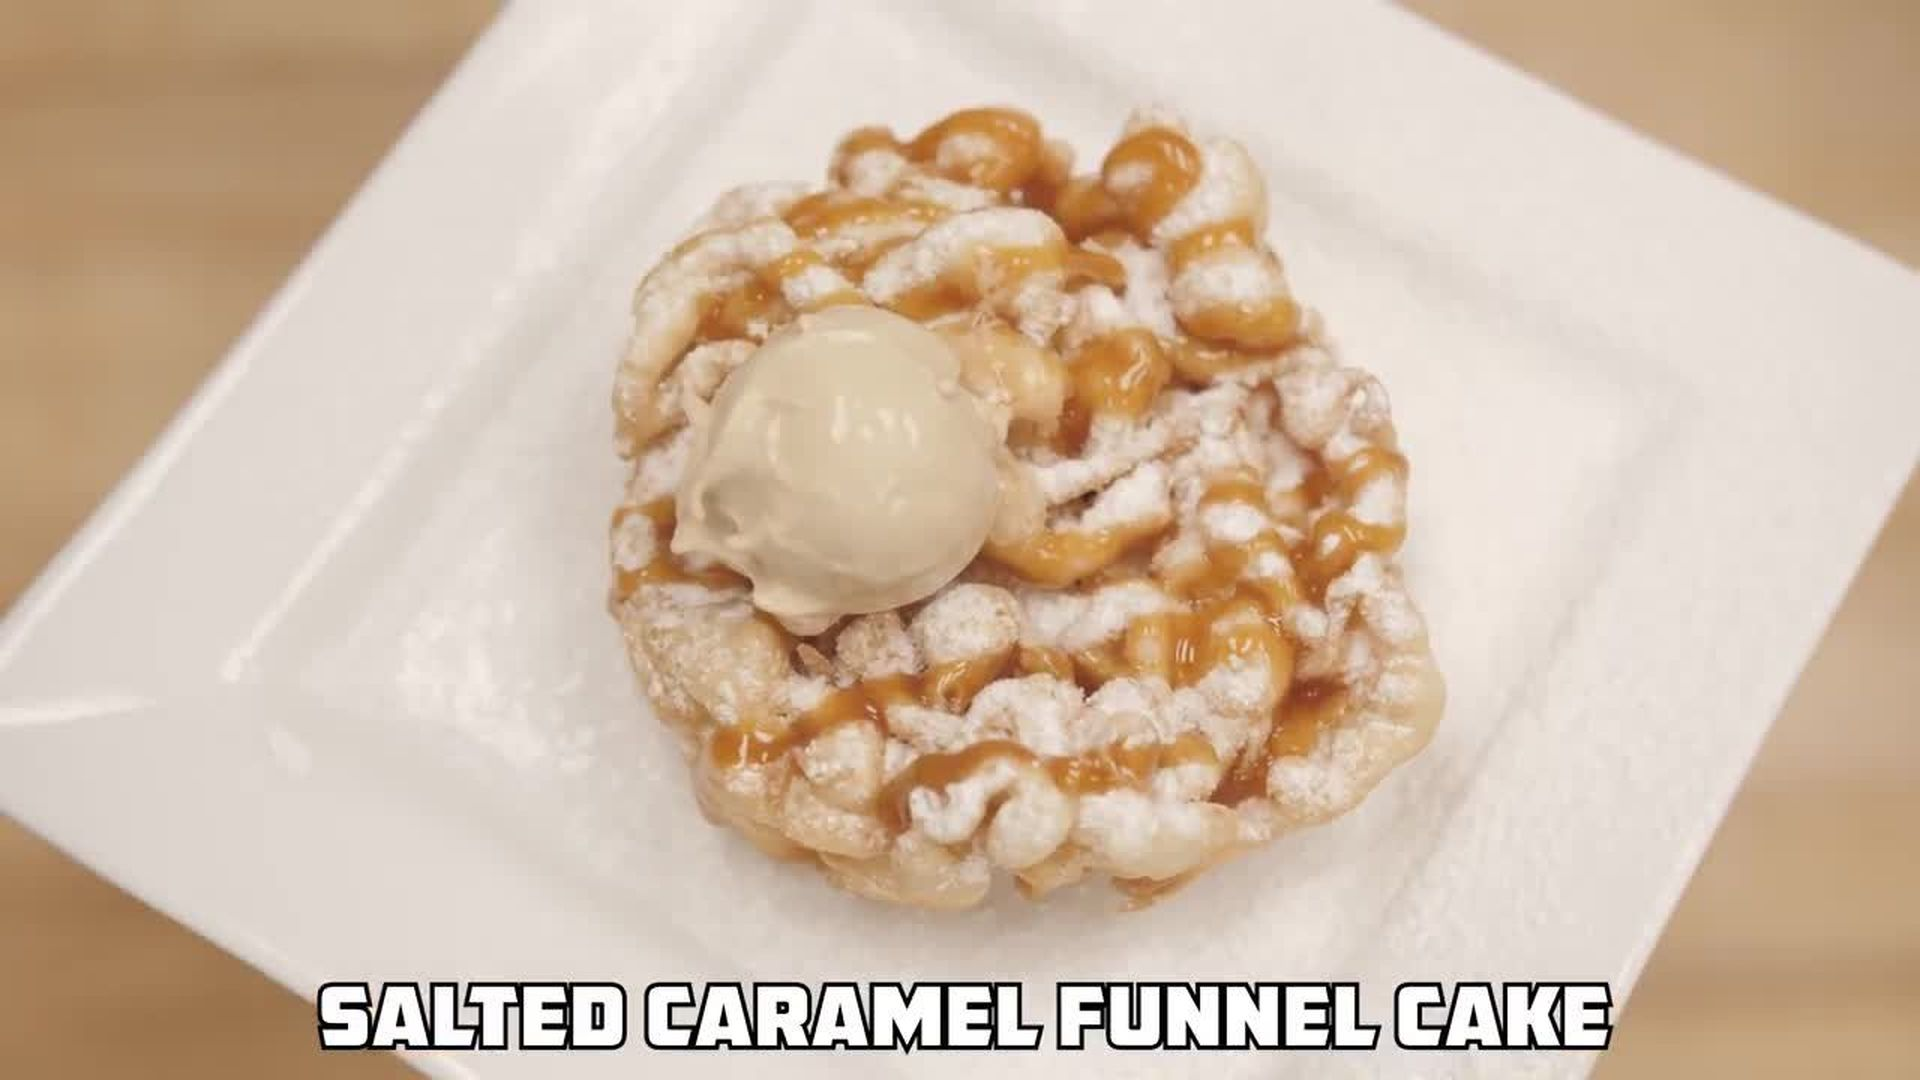 Will It Doughnut: How to Make A Salted Caramel Funnel Cake